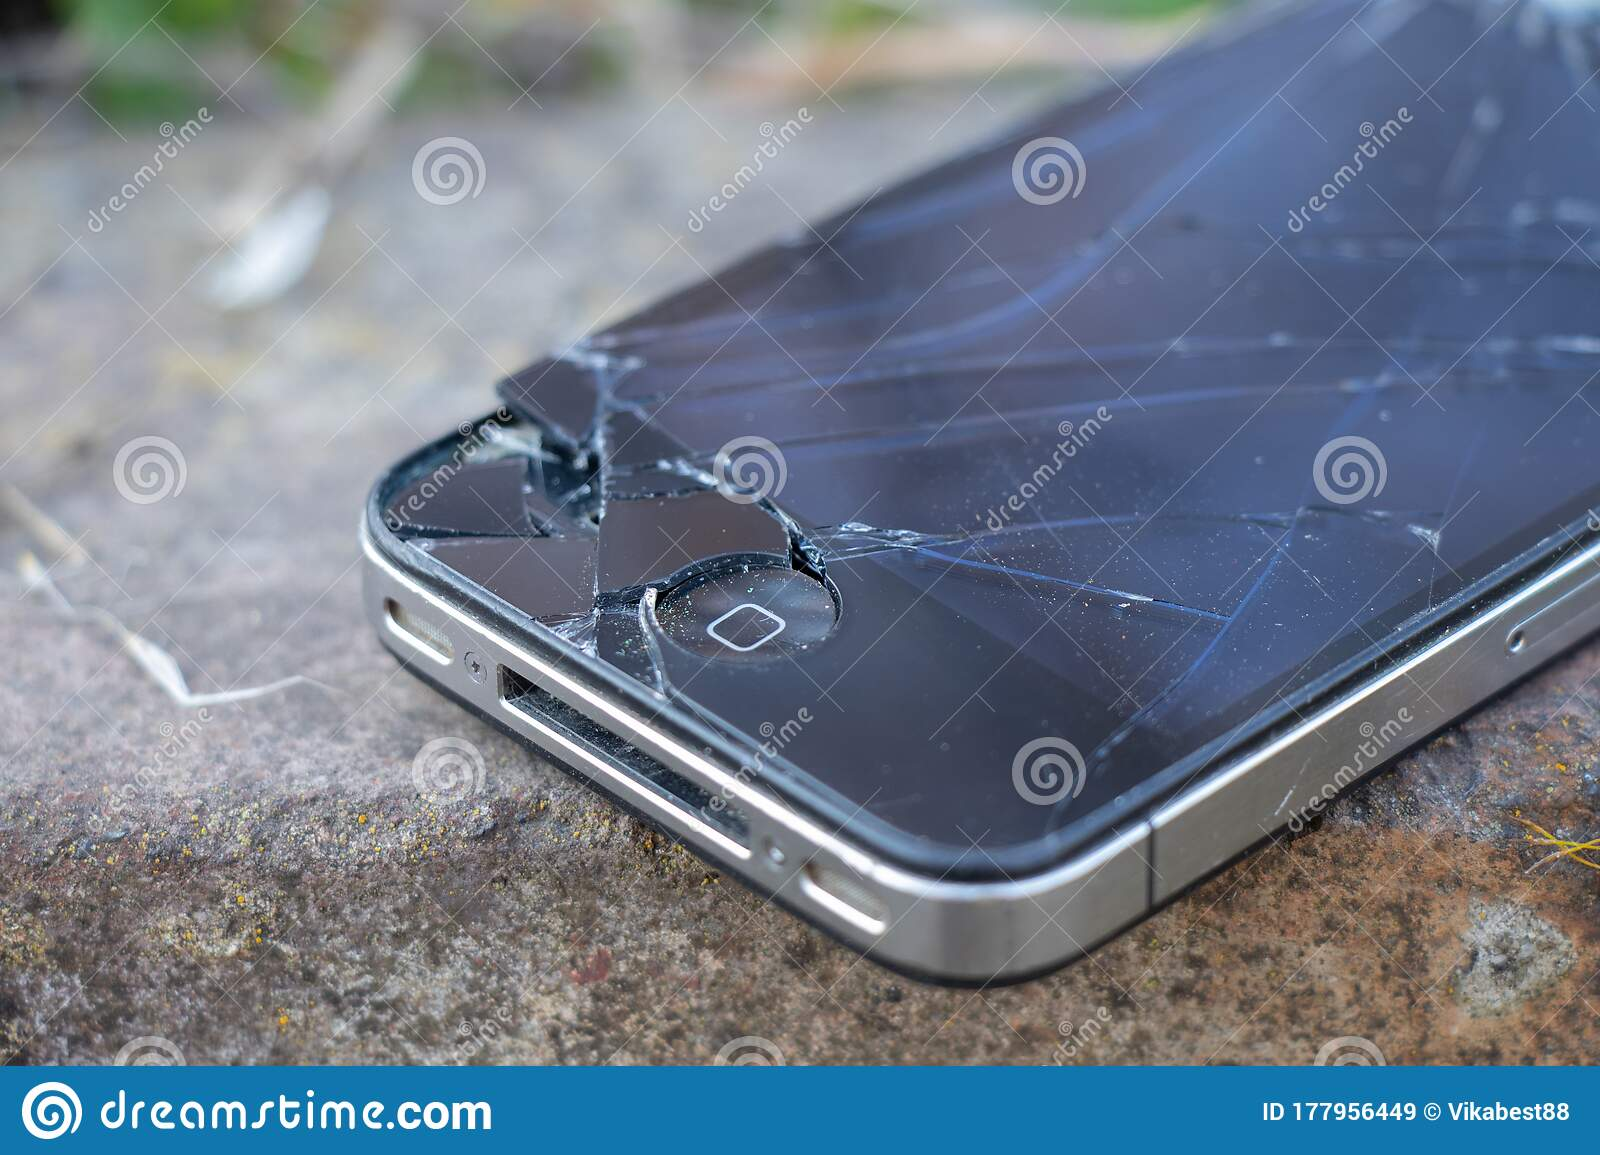 1 154 Broken Iphone Photos Free Royalty Free Stock Photos From Dreamstime